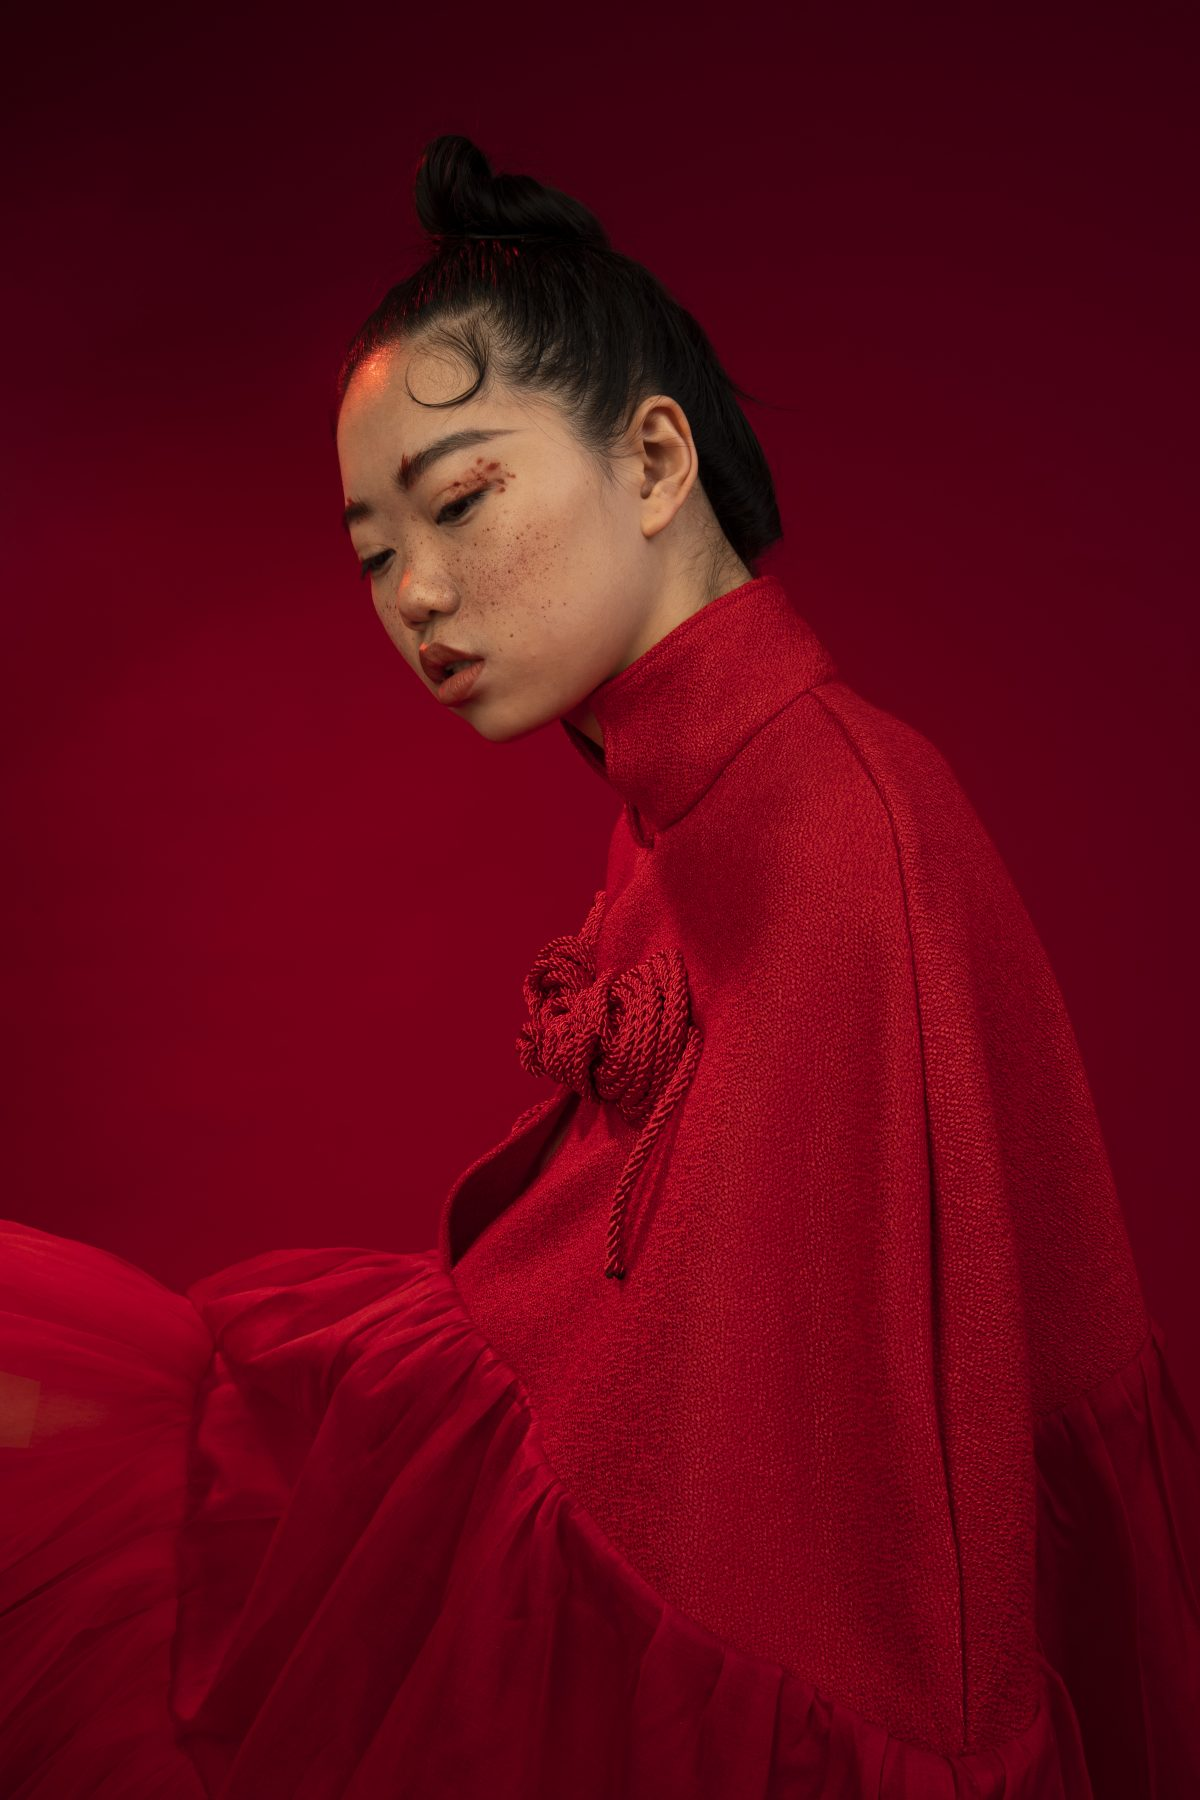 "<span class=""hot"">Hot <i class=""fa fa-bolt""></i></span> Ellis Chen 